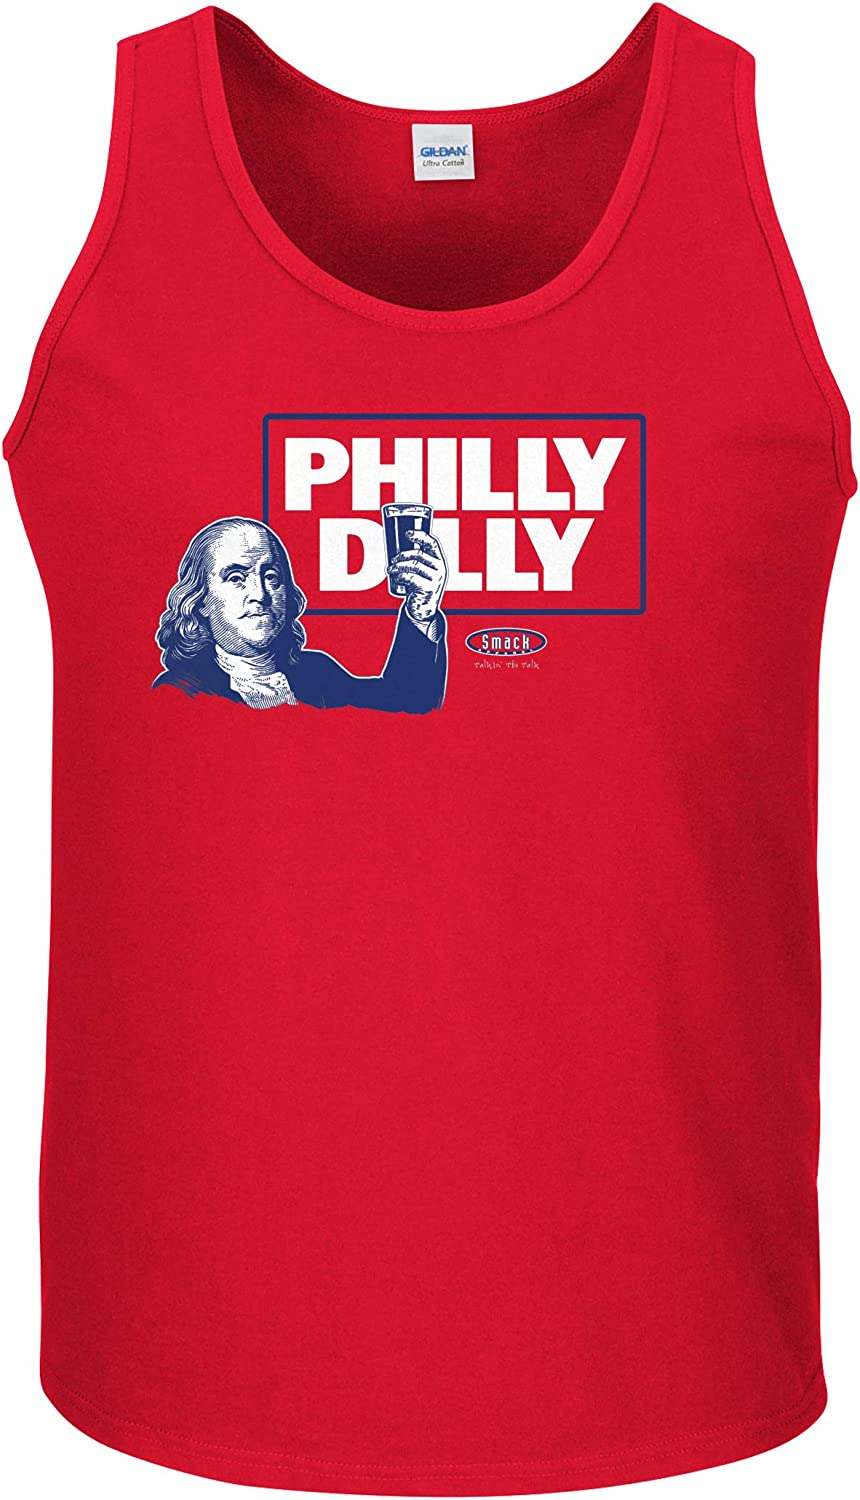 Philly Dilly Sm-5X Red T-Shirt Smack Apparel Philadelphia Baseball Fans